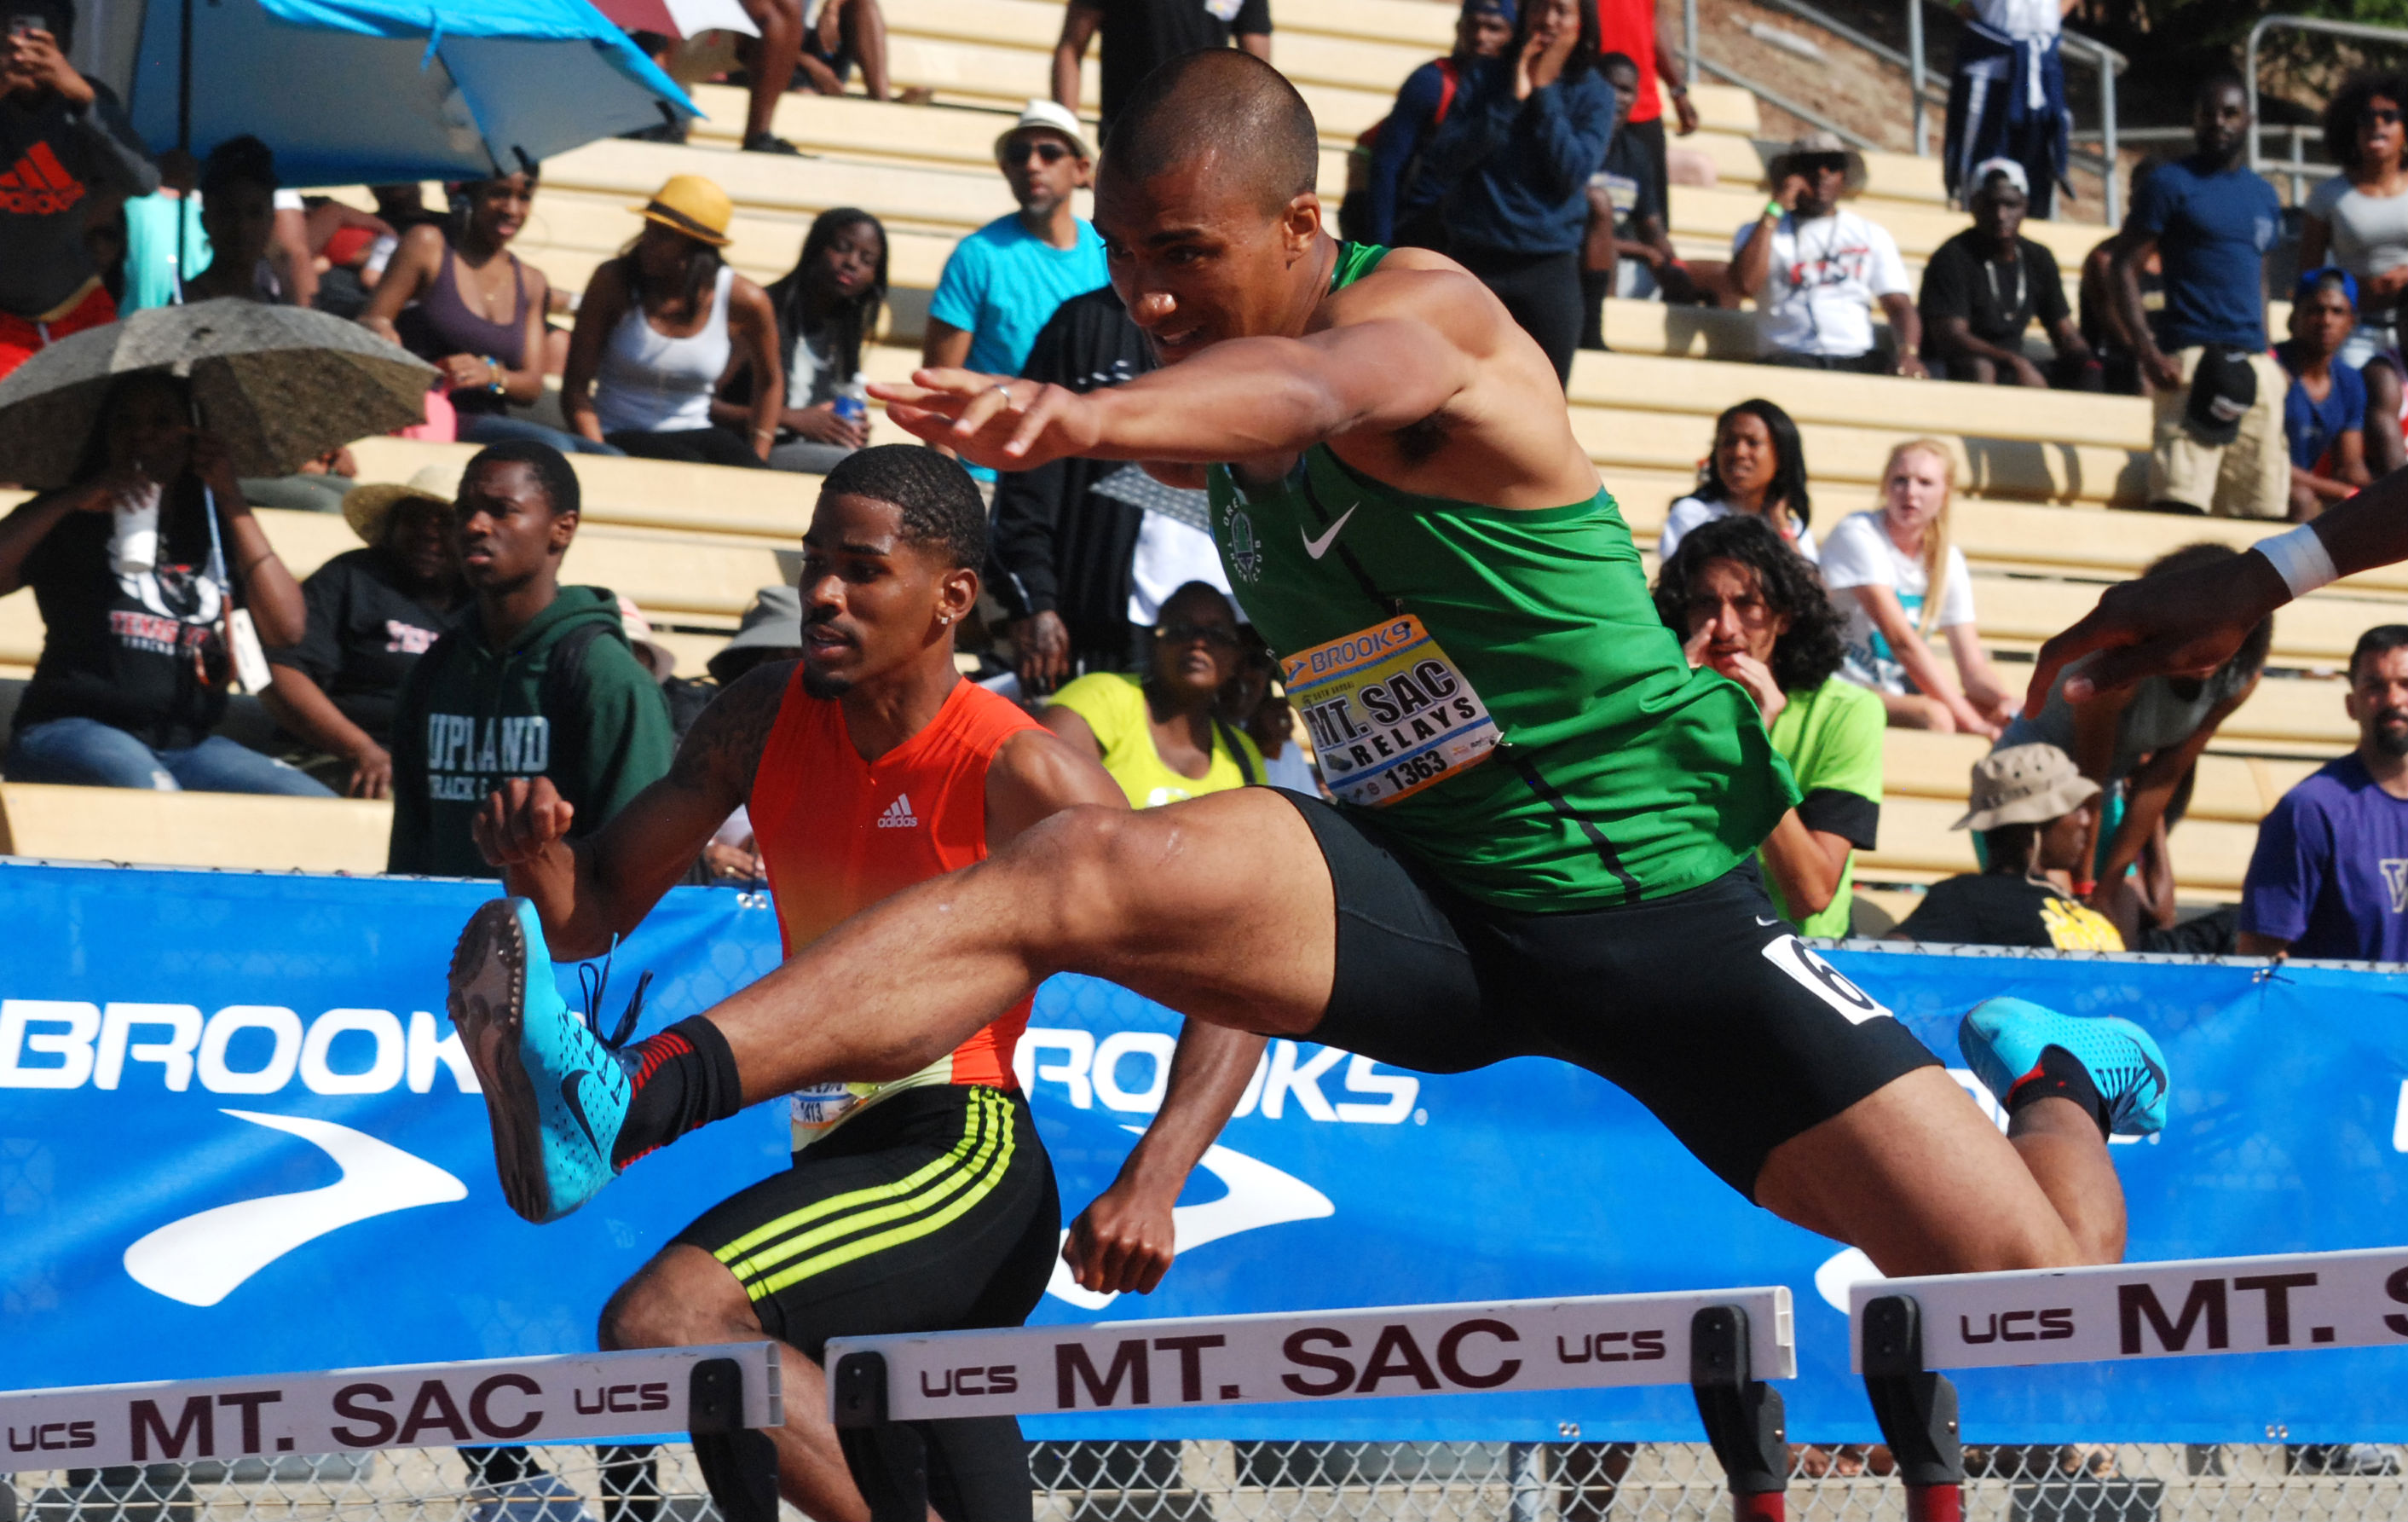 Ashton took the 10th barrier in his 400H debut at Mt. SAC Relays like a pro.